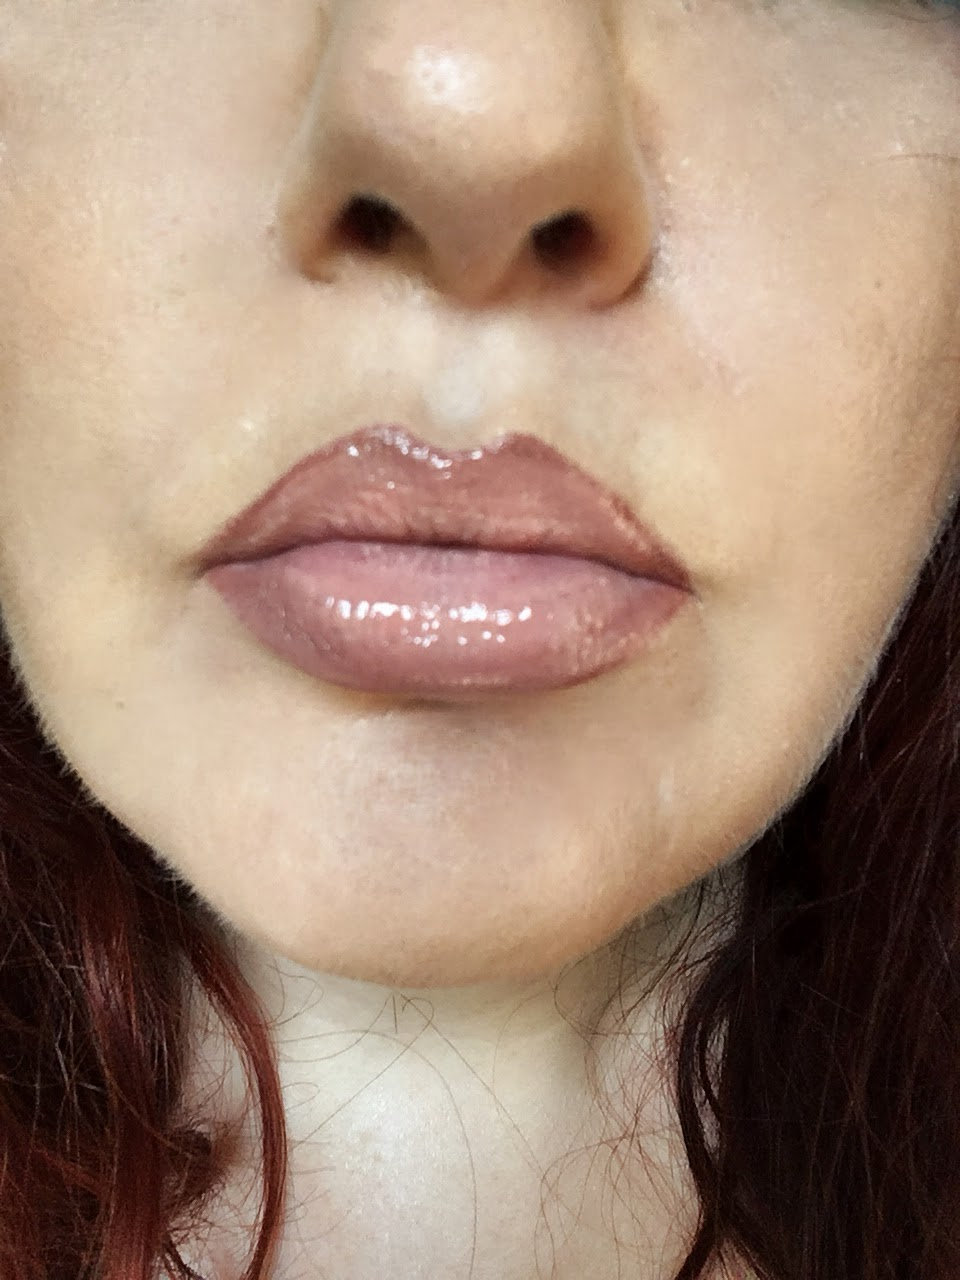 Review Flirt Cosmetics Chic Happens Ombr Lip Kit In Meme Lover City Color Liner Marsala The Lipliner Kajal Went On Smoothly Easily And Lined My Lips Like Nothing